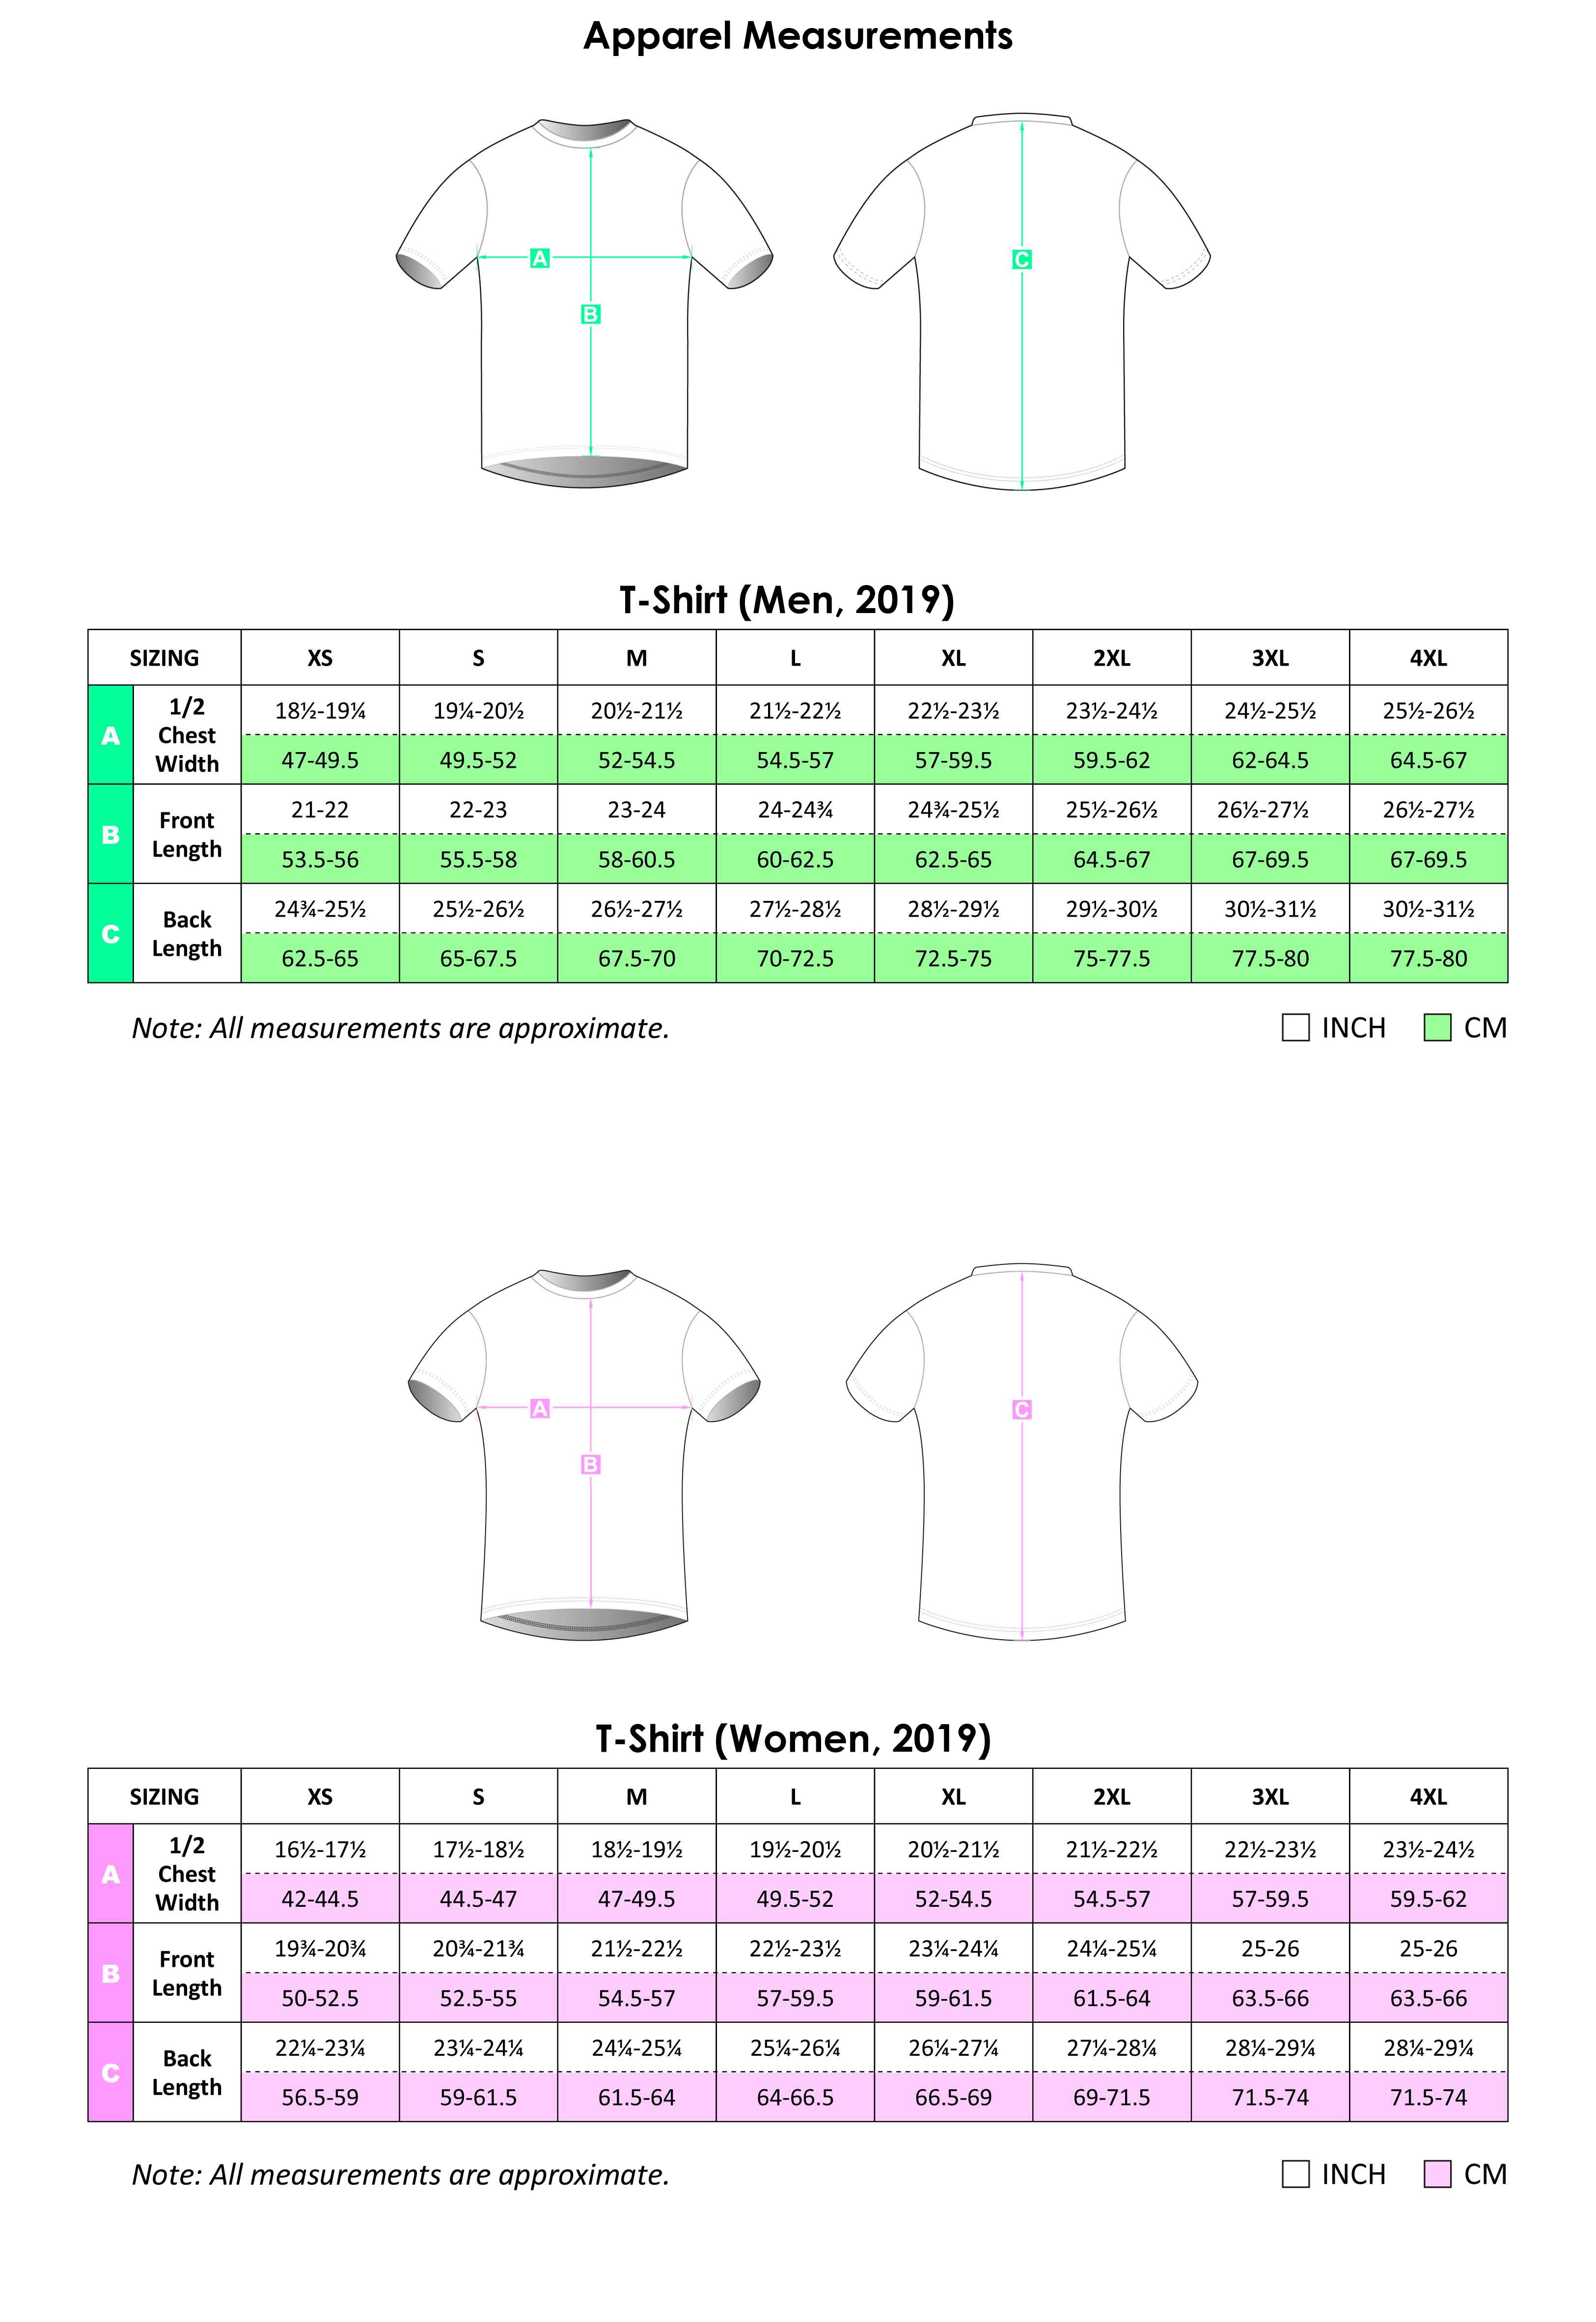 T Shirt Apparel Size Chart